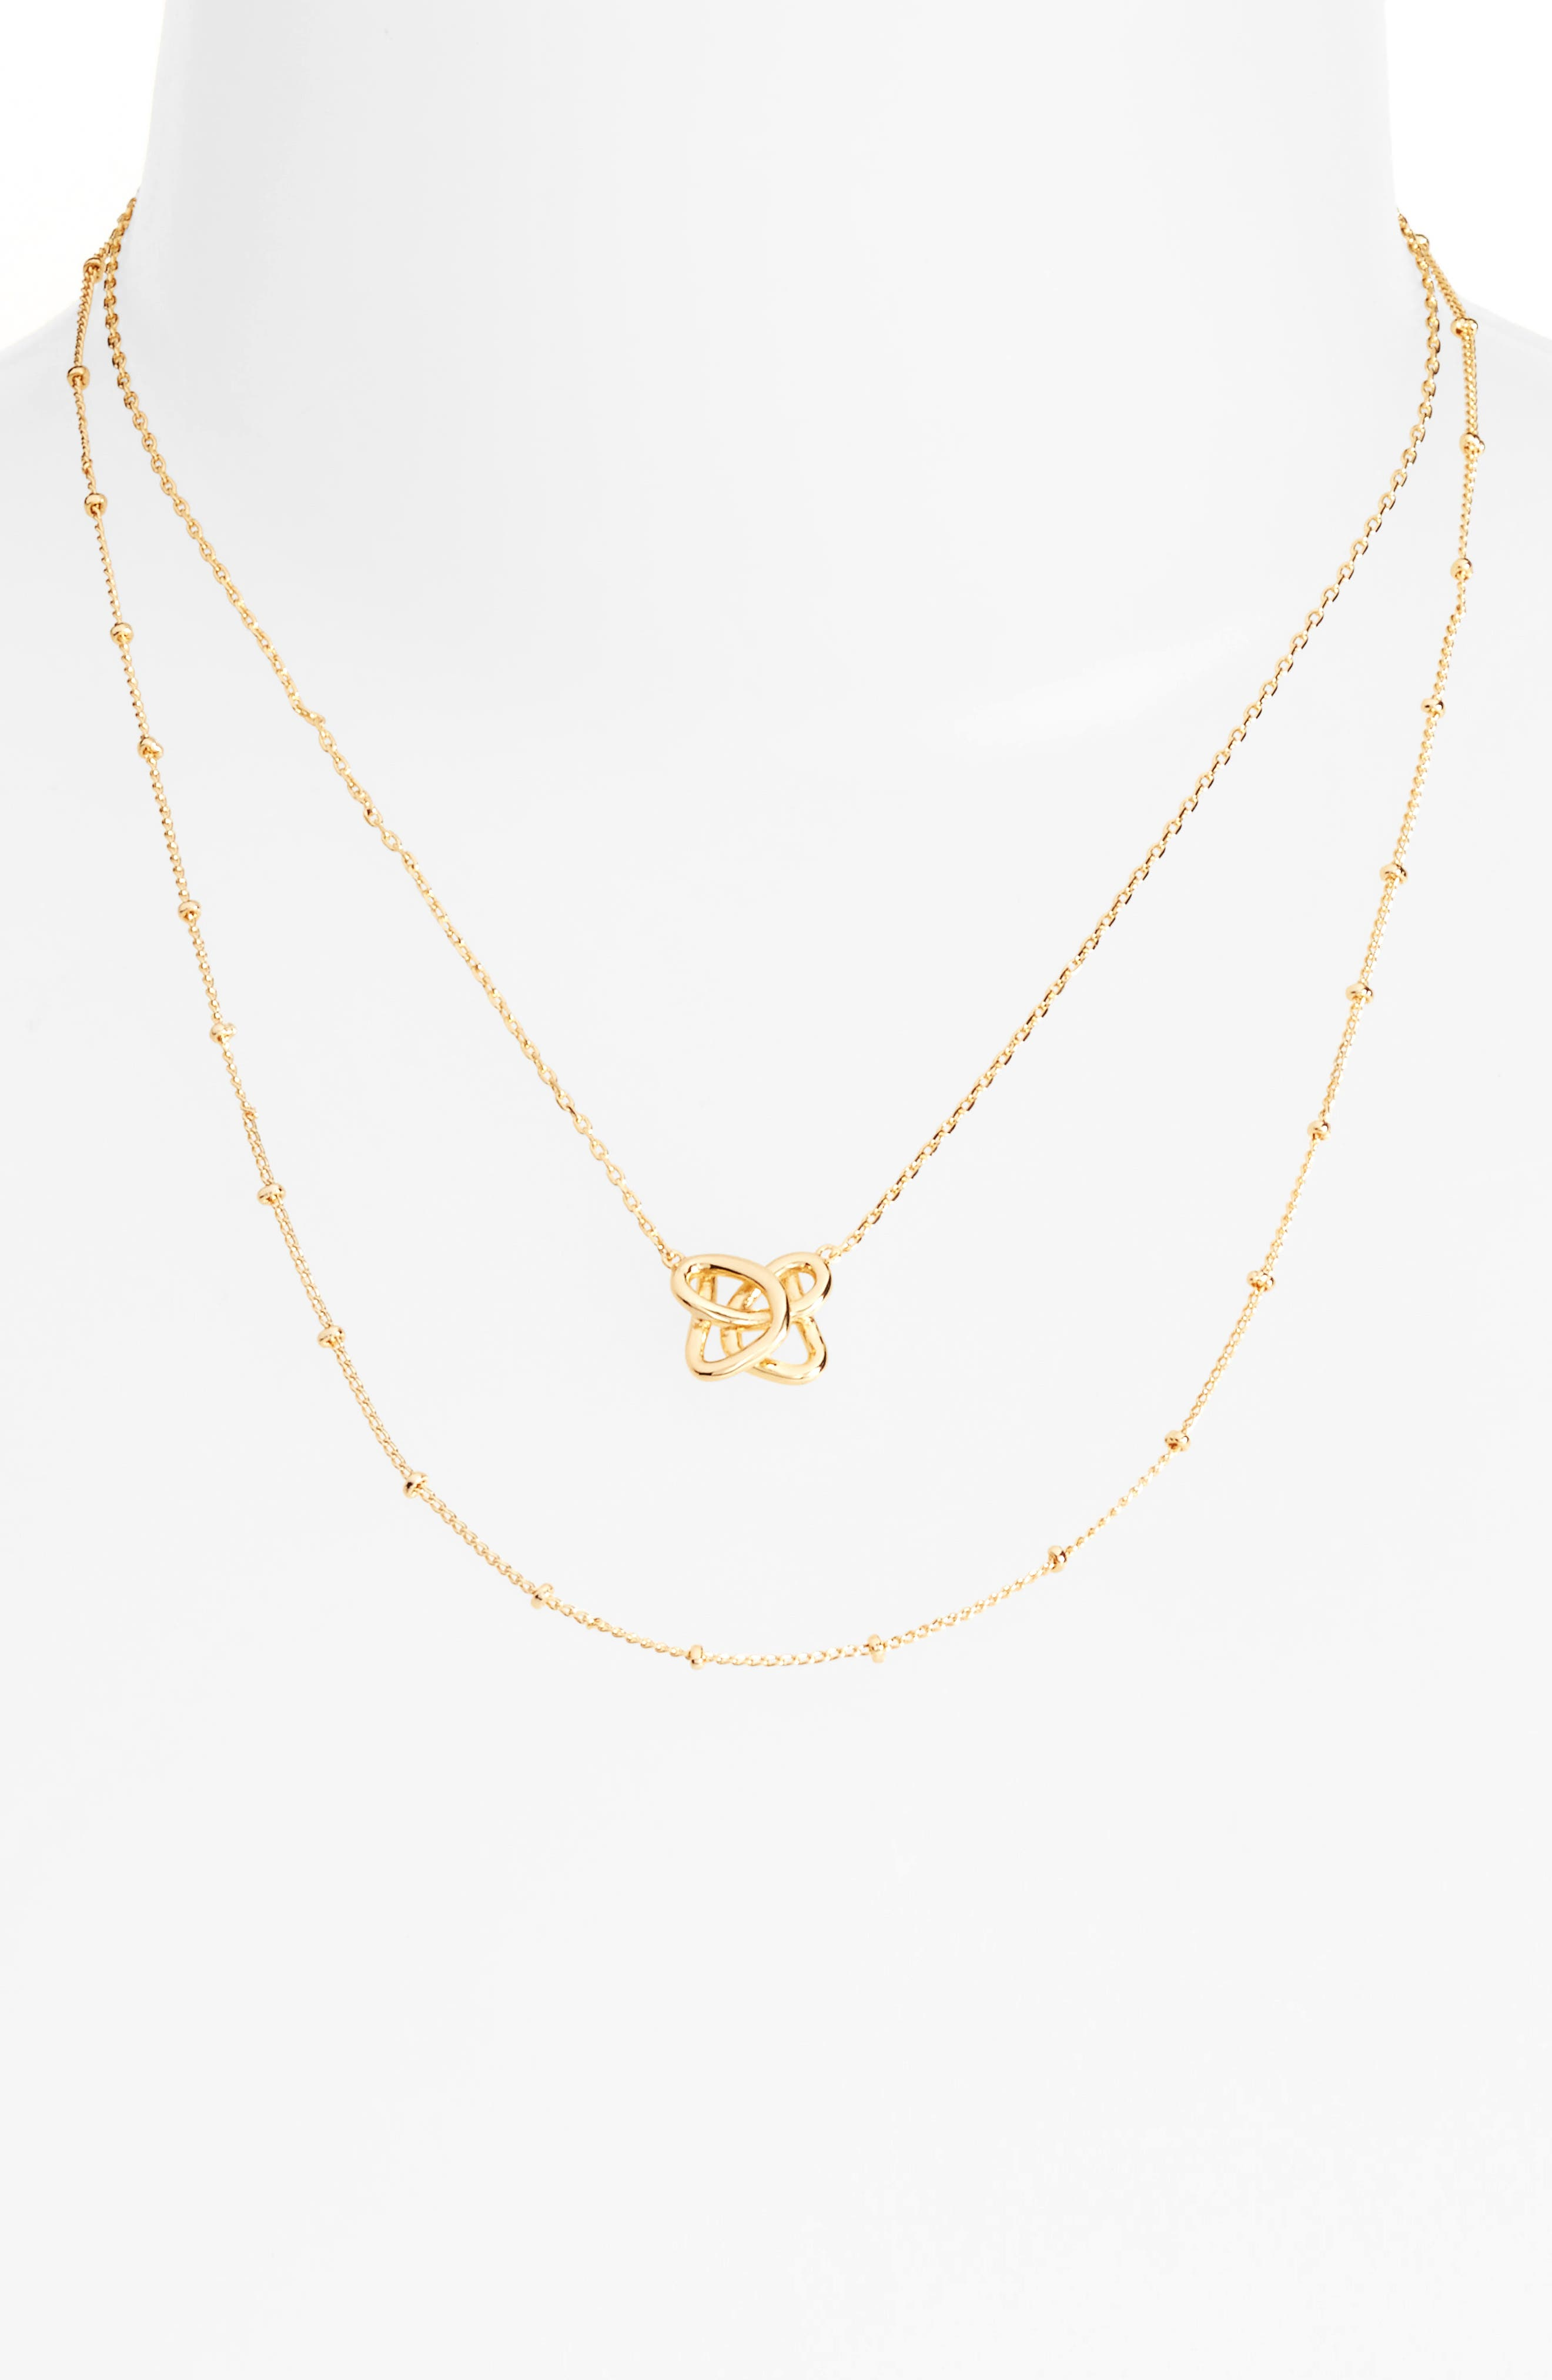 Jules Smith Curly Knot Necklace